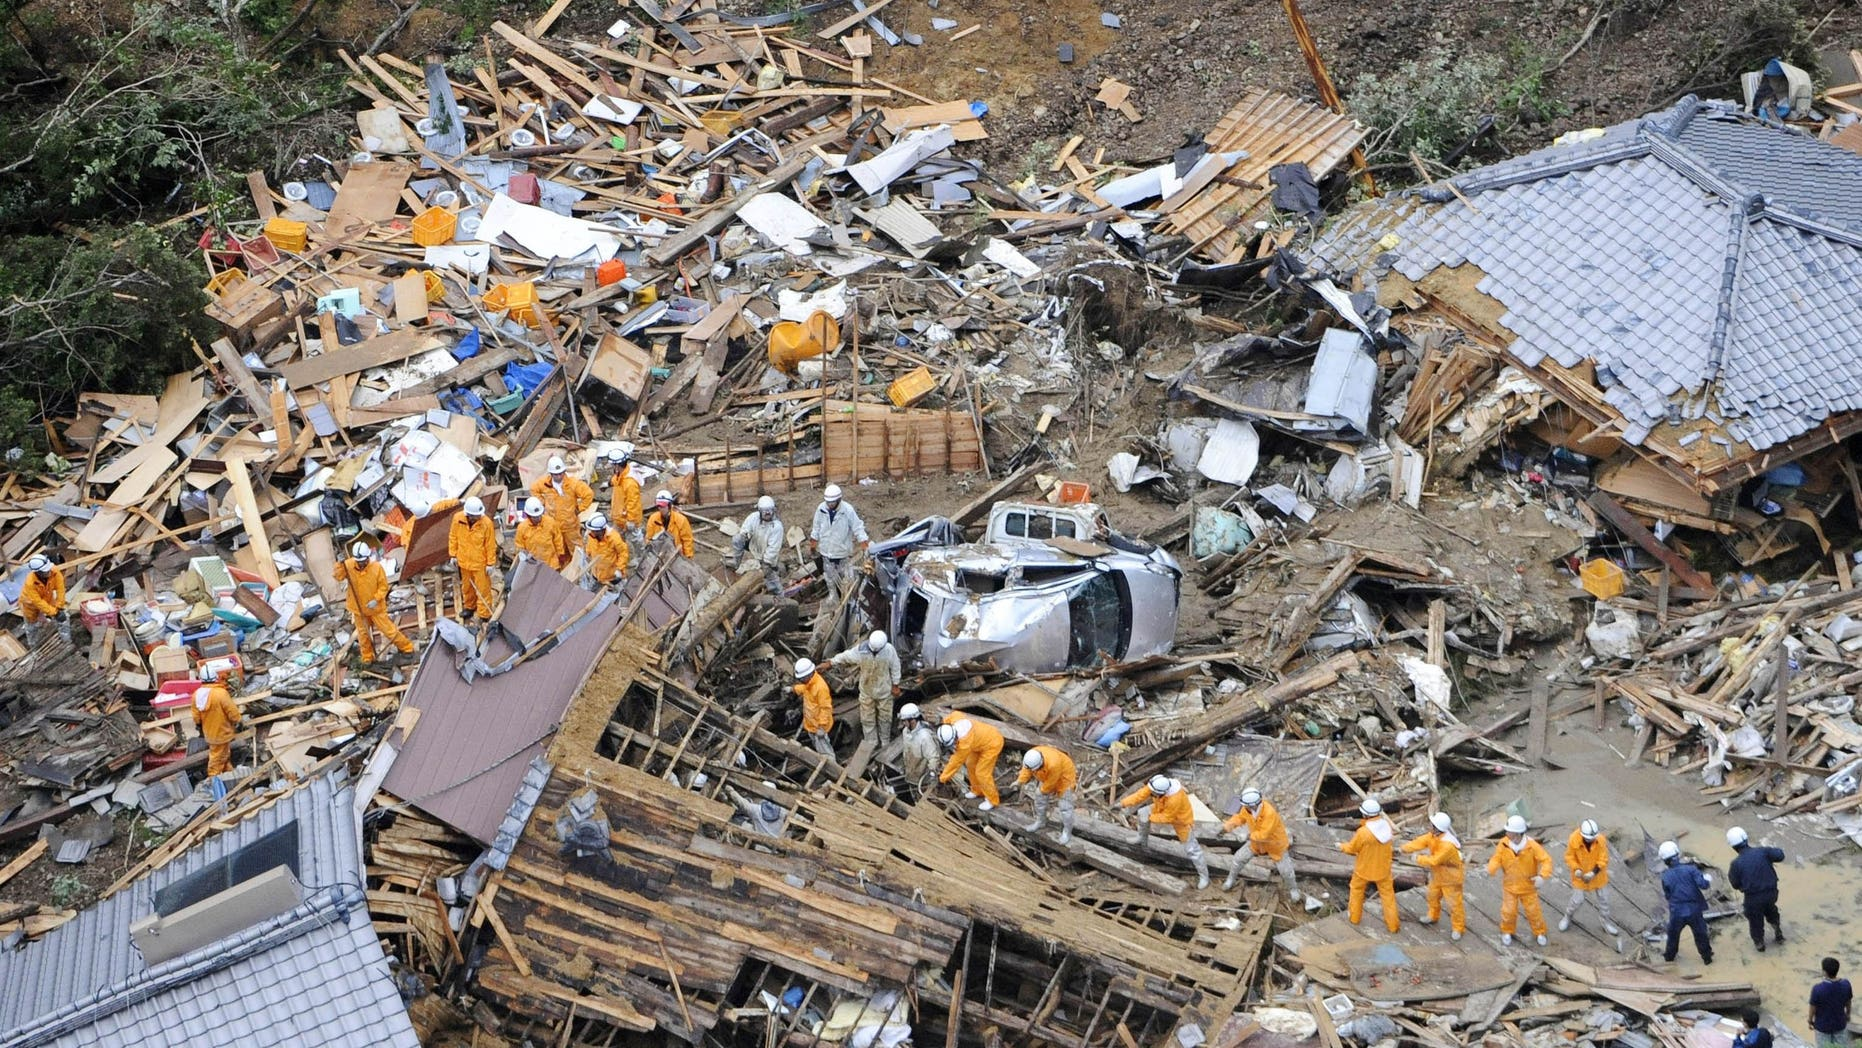 September 4: Volunteer firefighters search destroyed houses for missing people after heavy downpours by Typhoon Talas caused a landslide at Tanabe, central Japan. The storm dumped record amounts of rain Sunday in western and central Japan as it turned towns into lakes, washed away cars and triggered mudslides that obliterated houses.